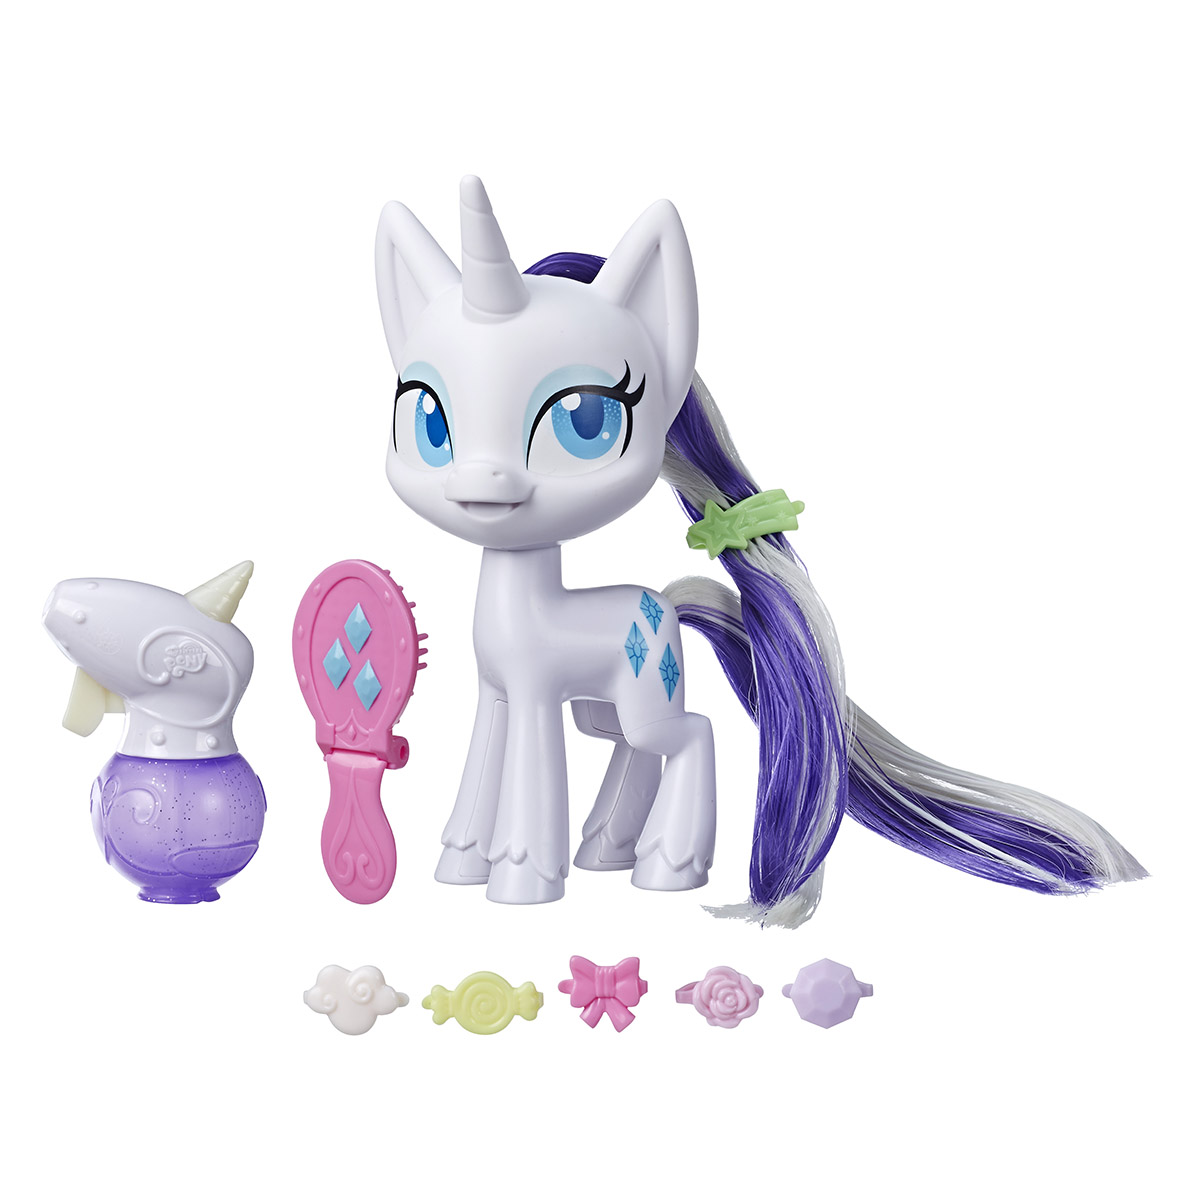 Set My Little Poney, Potiunea Magica, Stilul lui Rarity imagine 2021